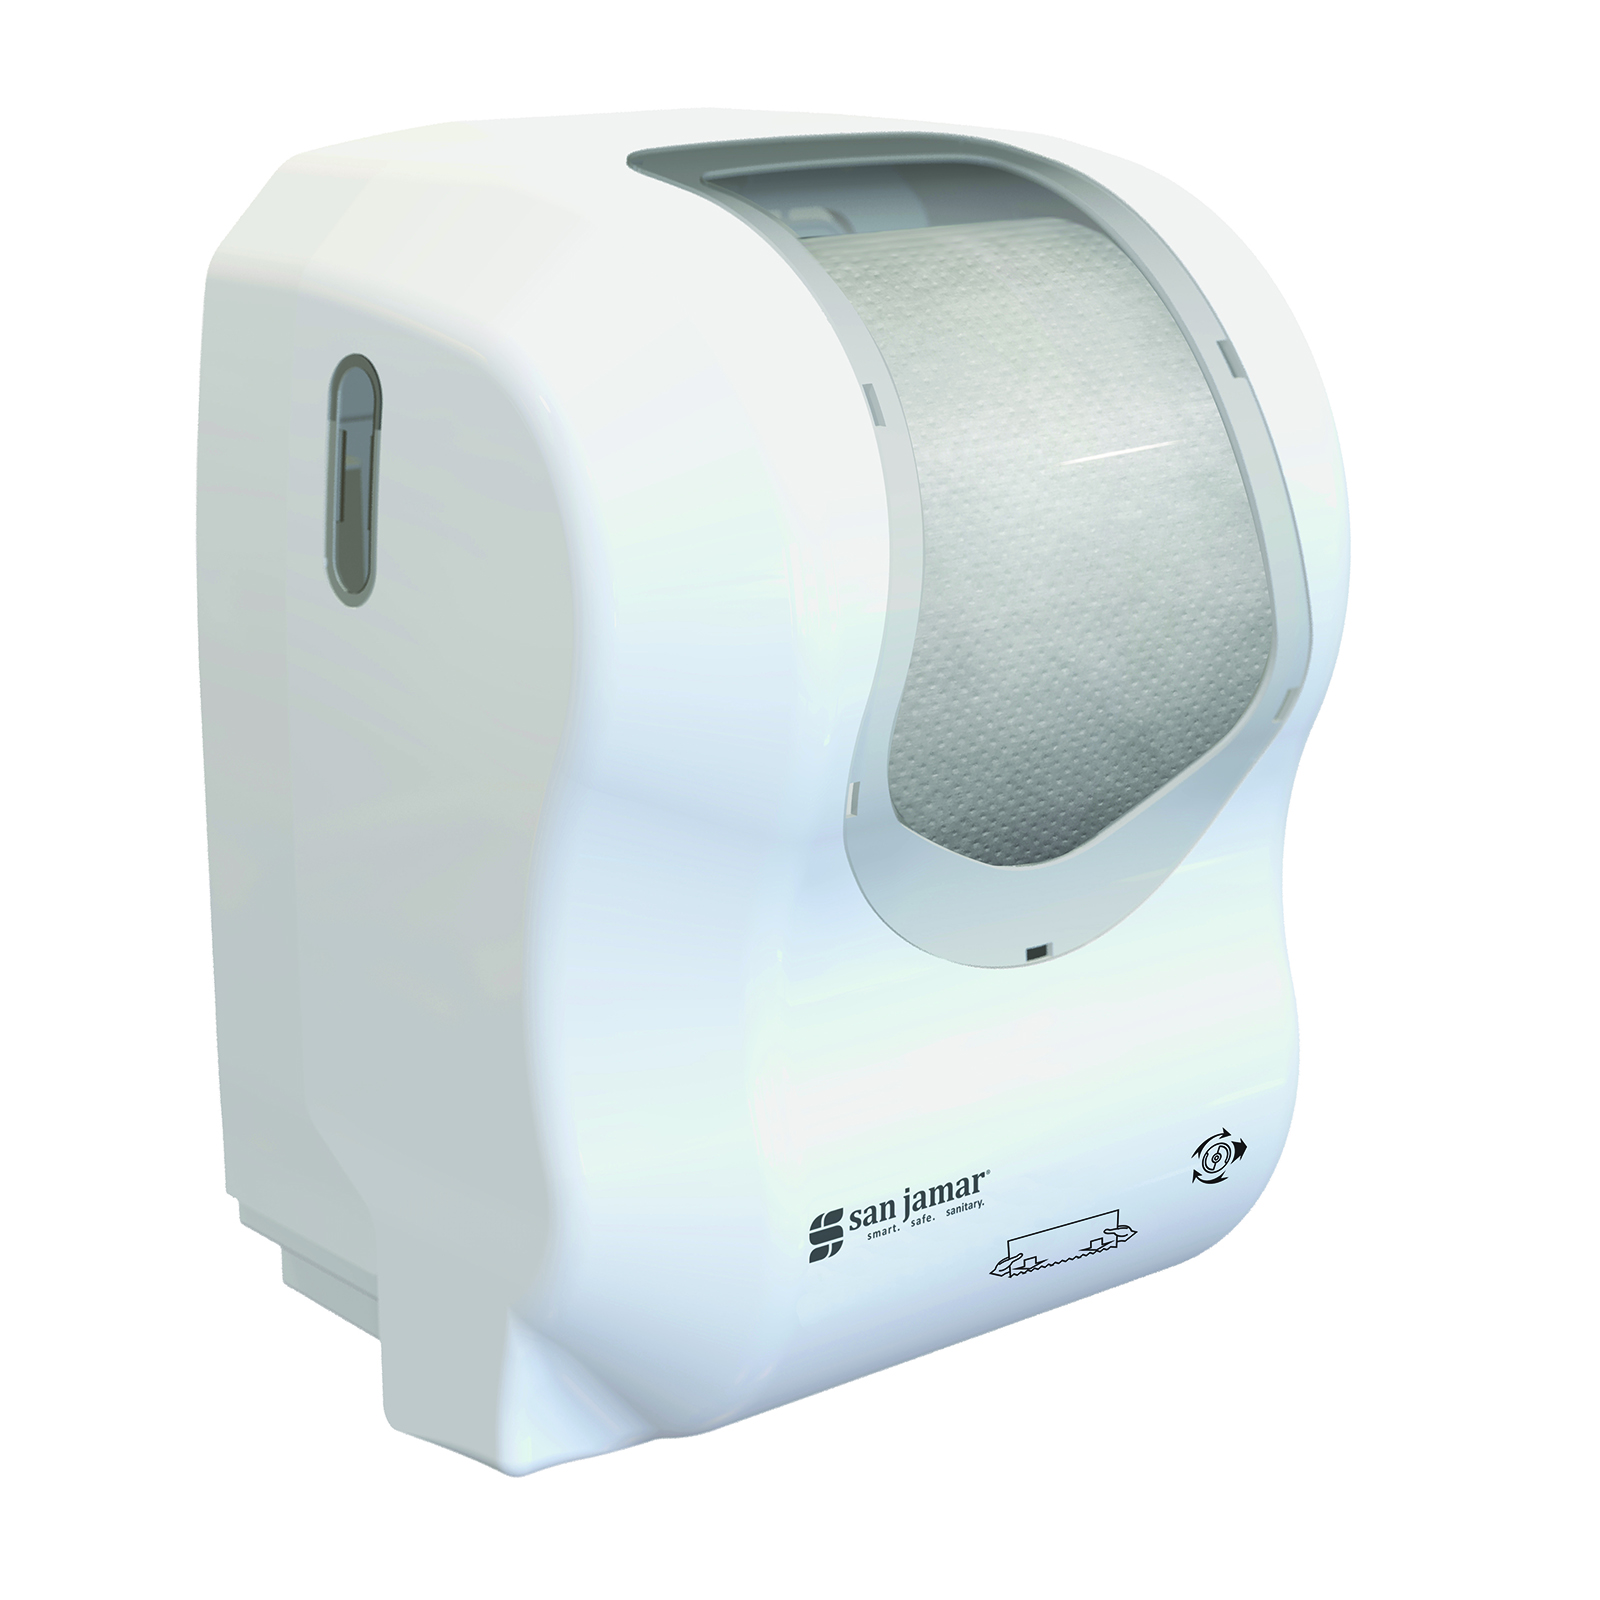 San Jamar T7470WHCL paper towel dispenser